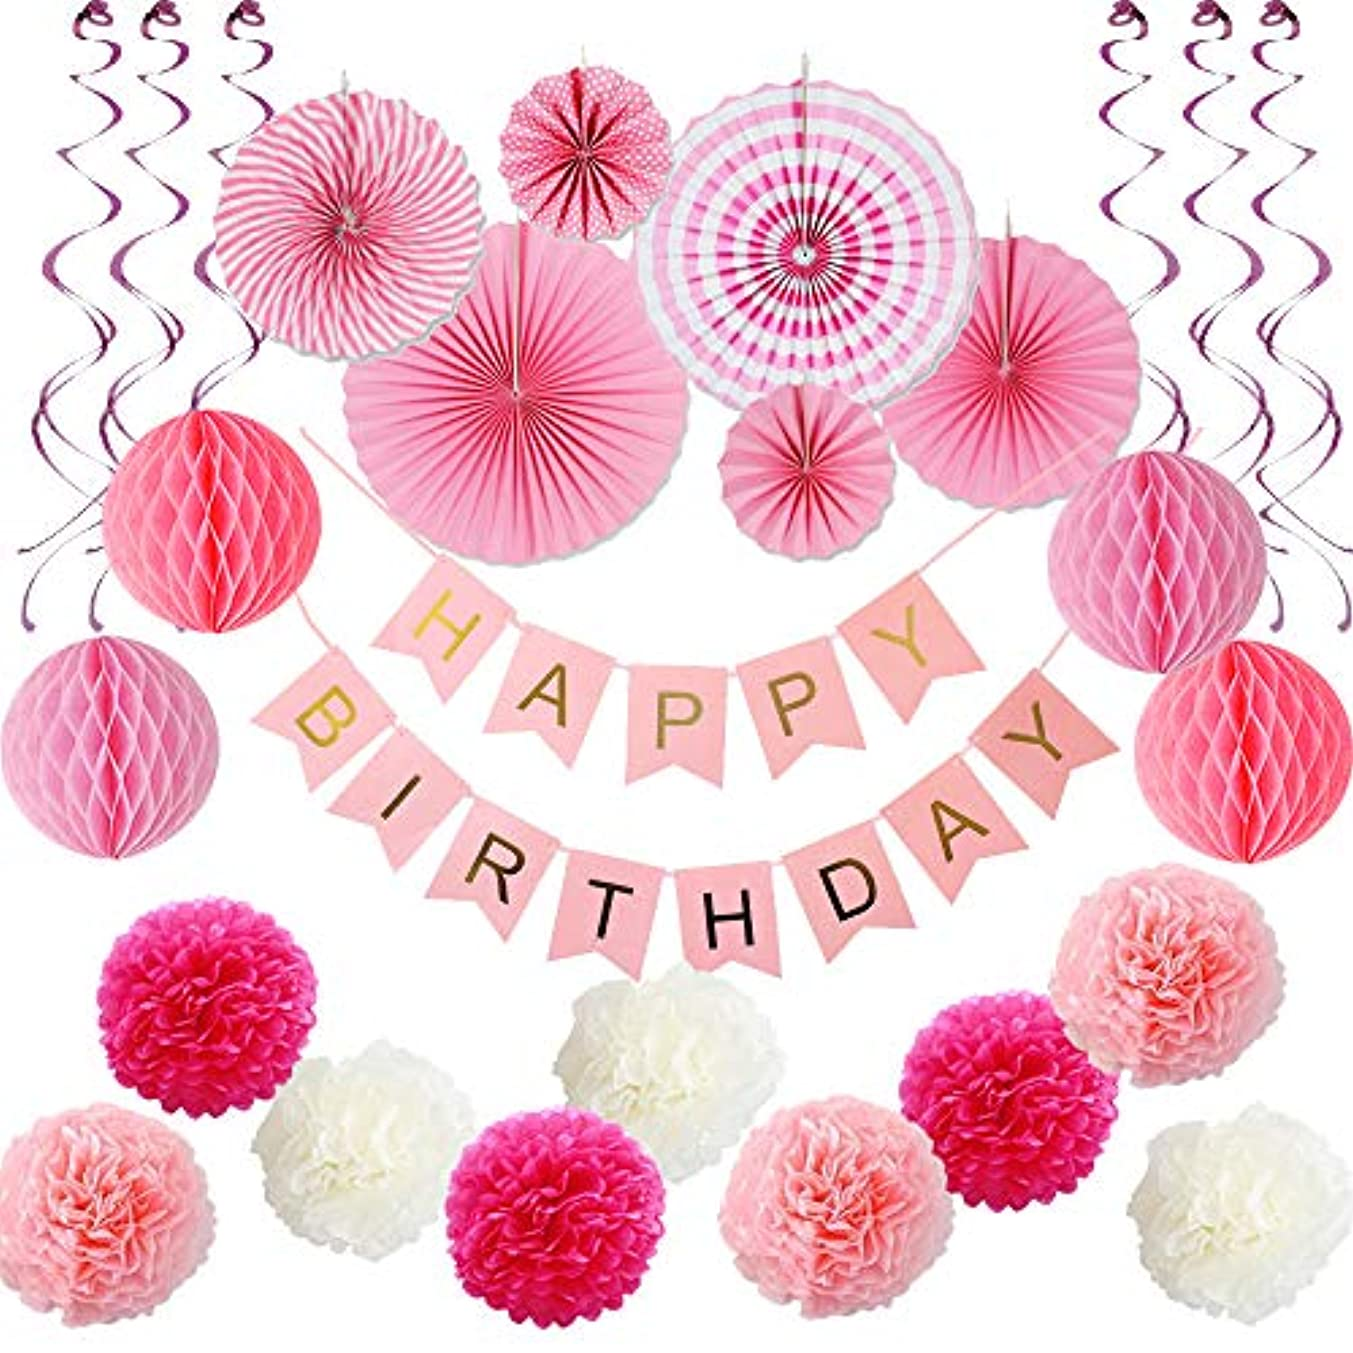 Pink Birthday Party Decoration Set - Happy Birthday Banner, Pink Paper Fans, Tissue Paper Pom Pom, Honeycomb Balls, Pink Swirl Hanging Decorations - 38 Piece Girls Birthday Part Decor Kit